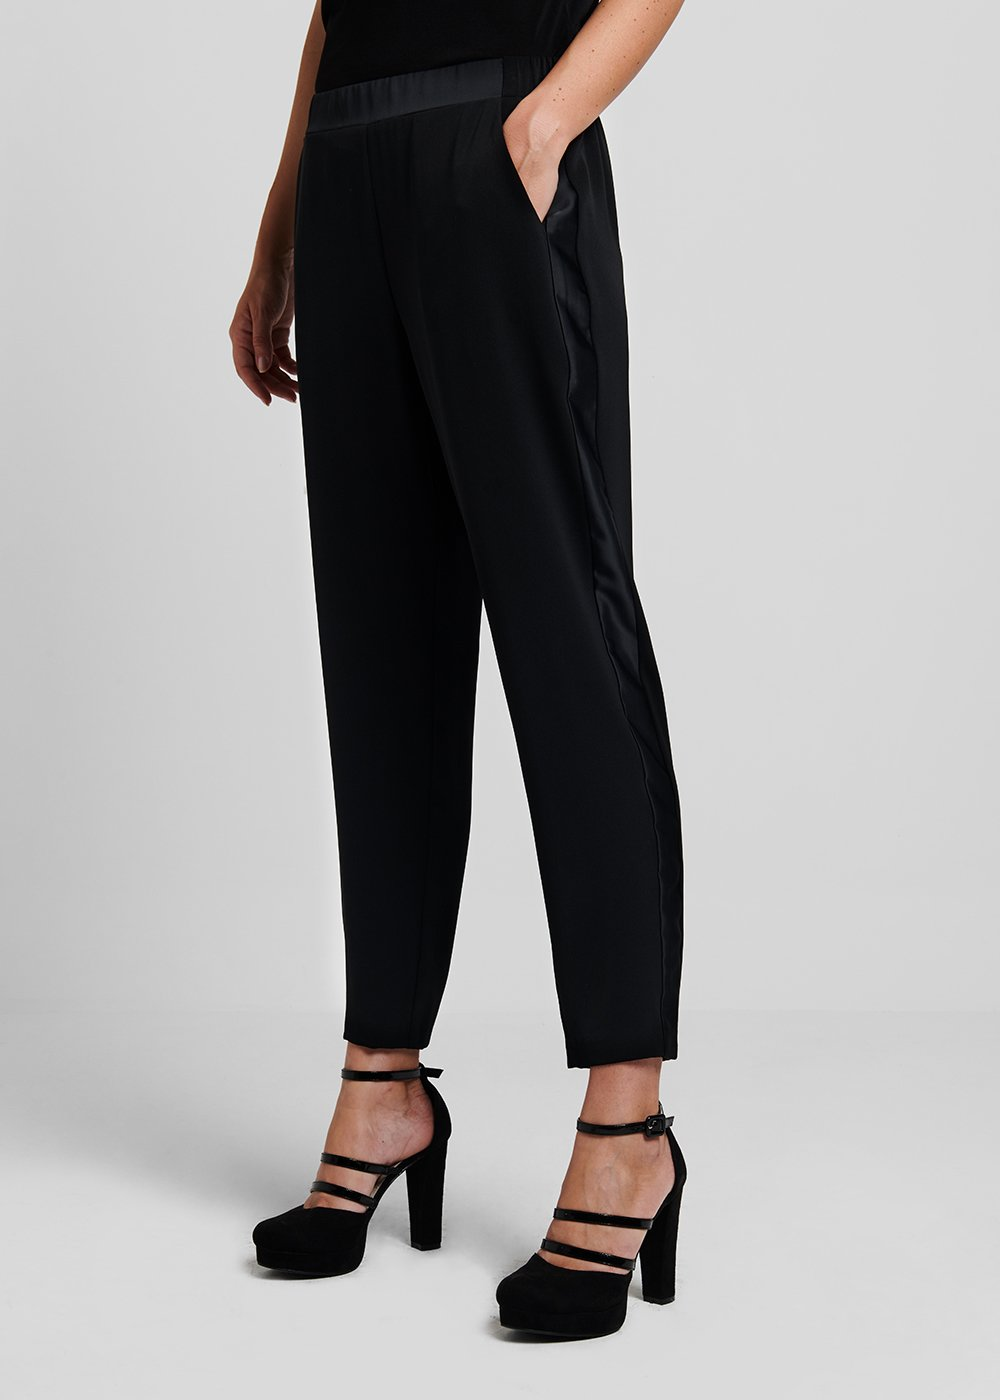 Palide trousers with side satin bands - Black - Woman